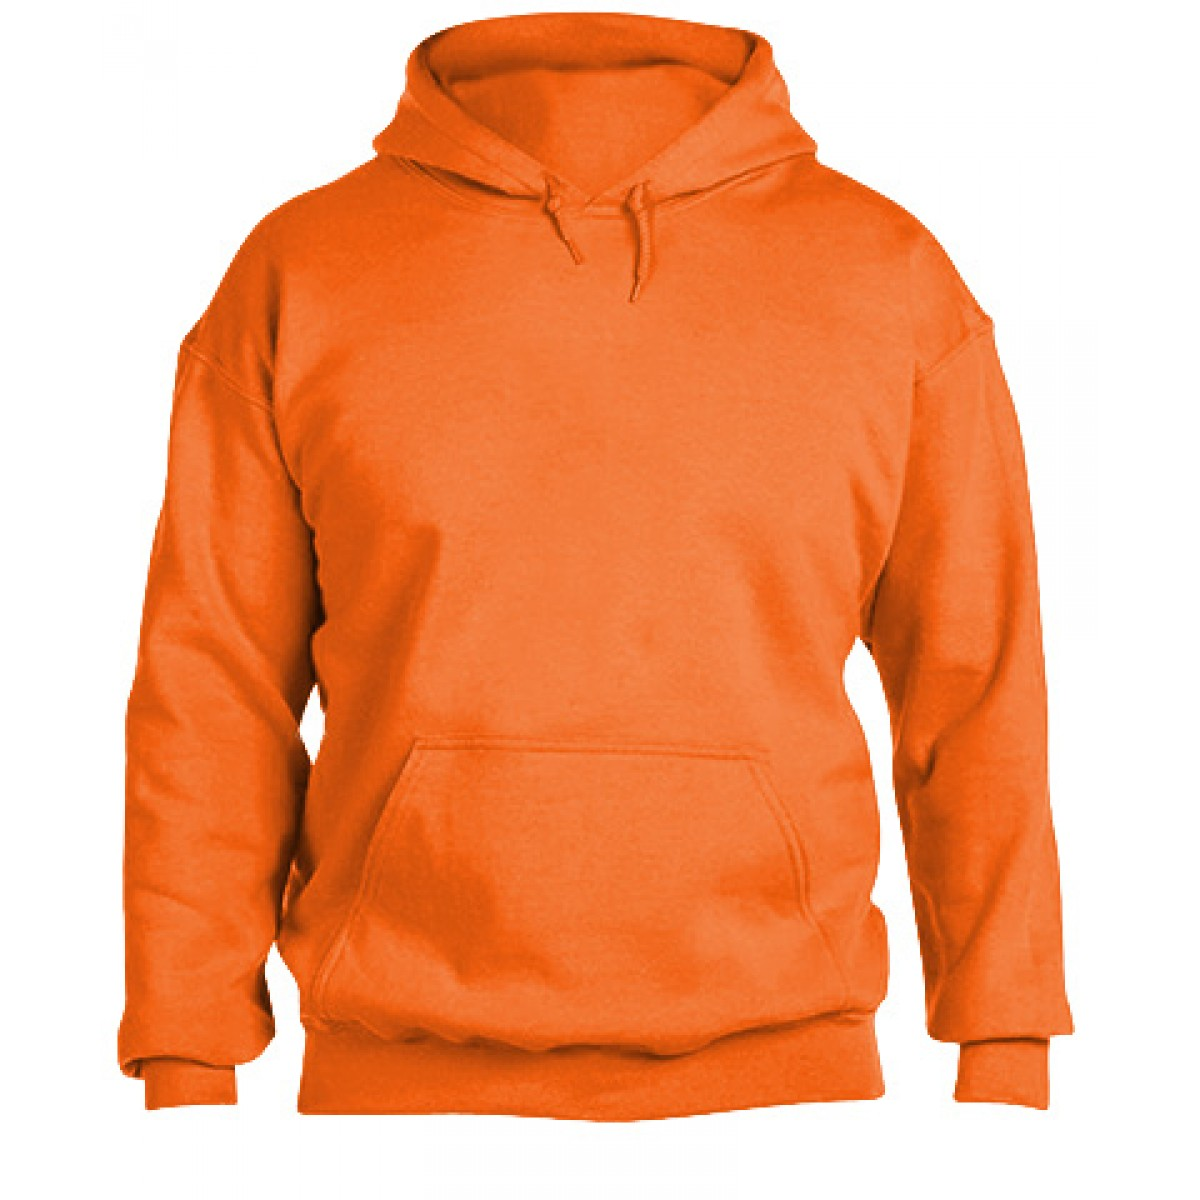 Hooded Sweatshirt 50/50 Heavy Blend-Safety Orange-2XL